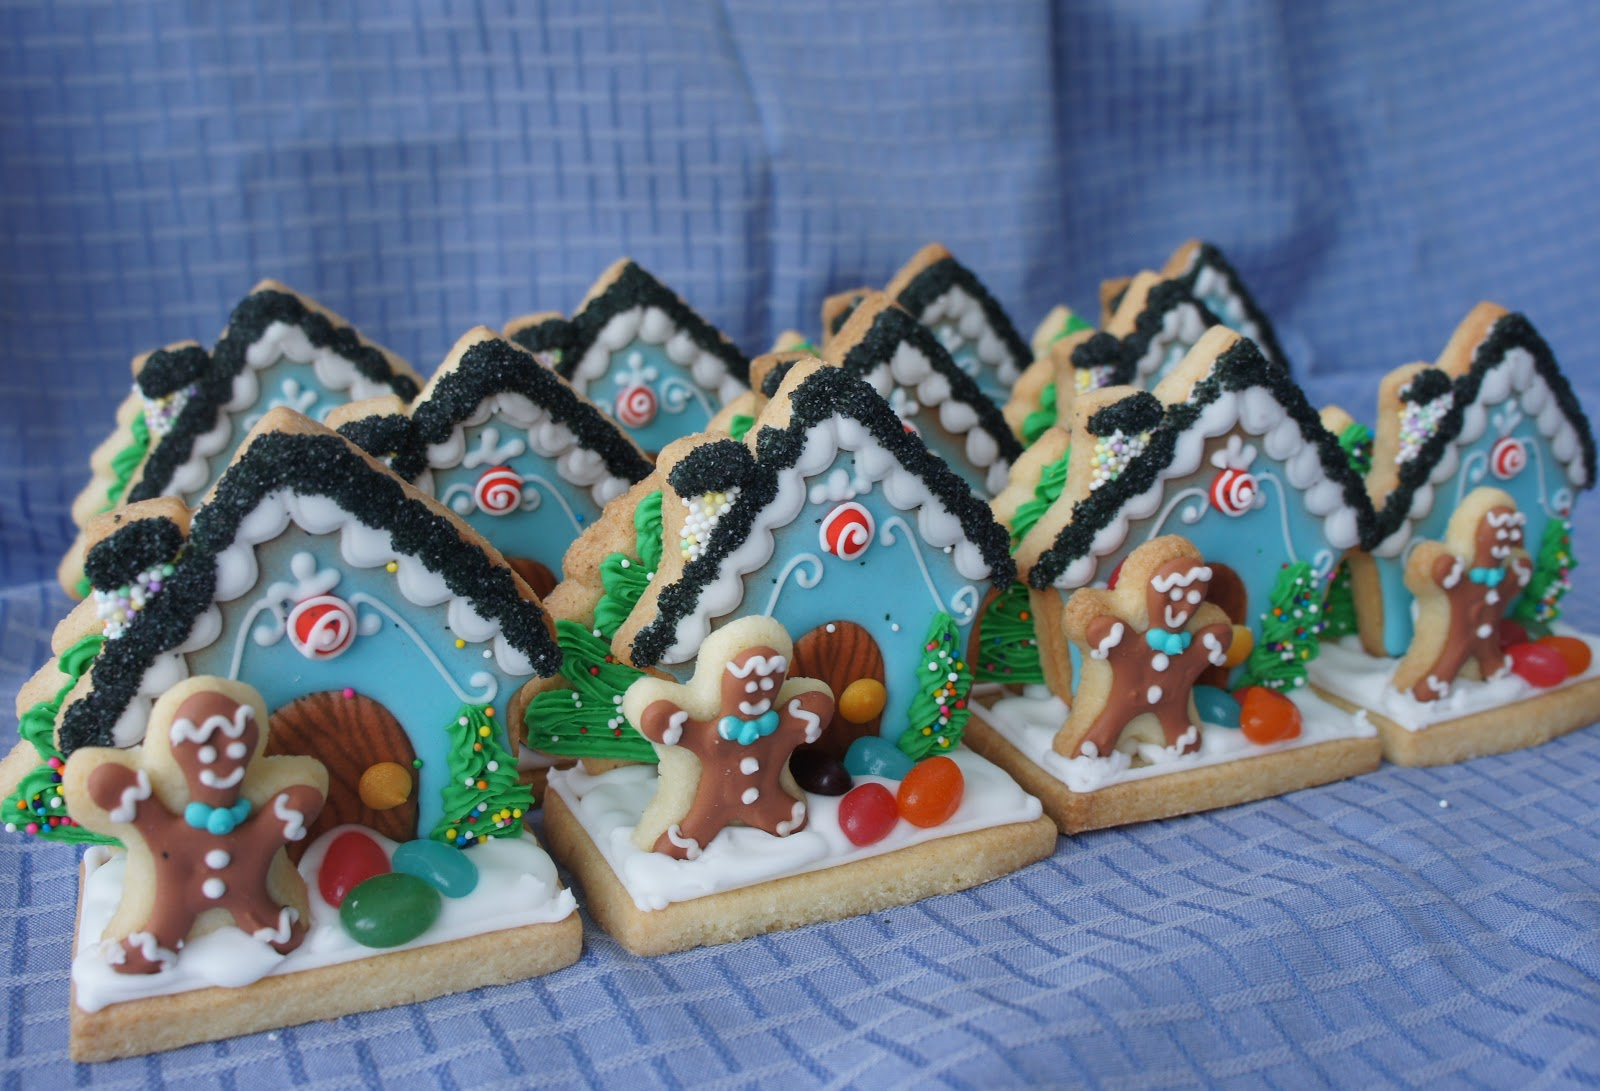 Mini 3d Decorated Holiday Cookie Scene With Gingerbread Man